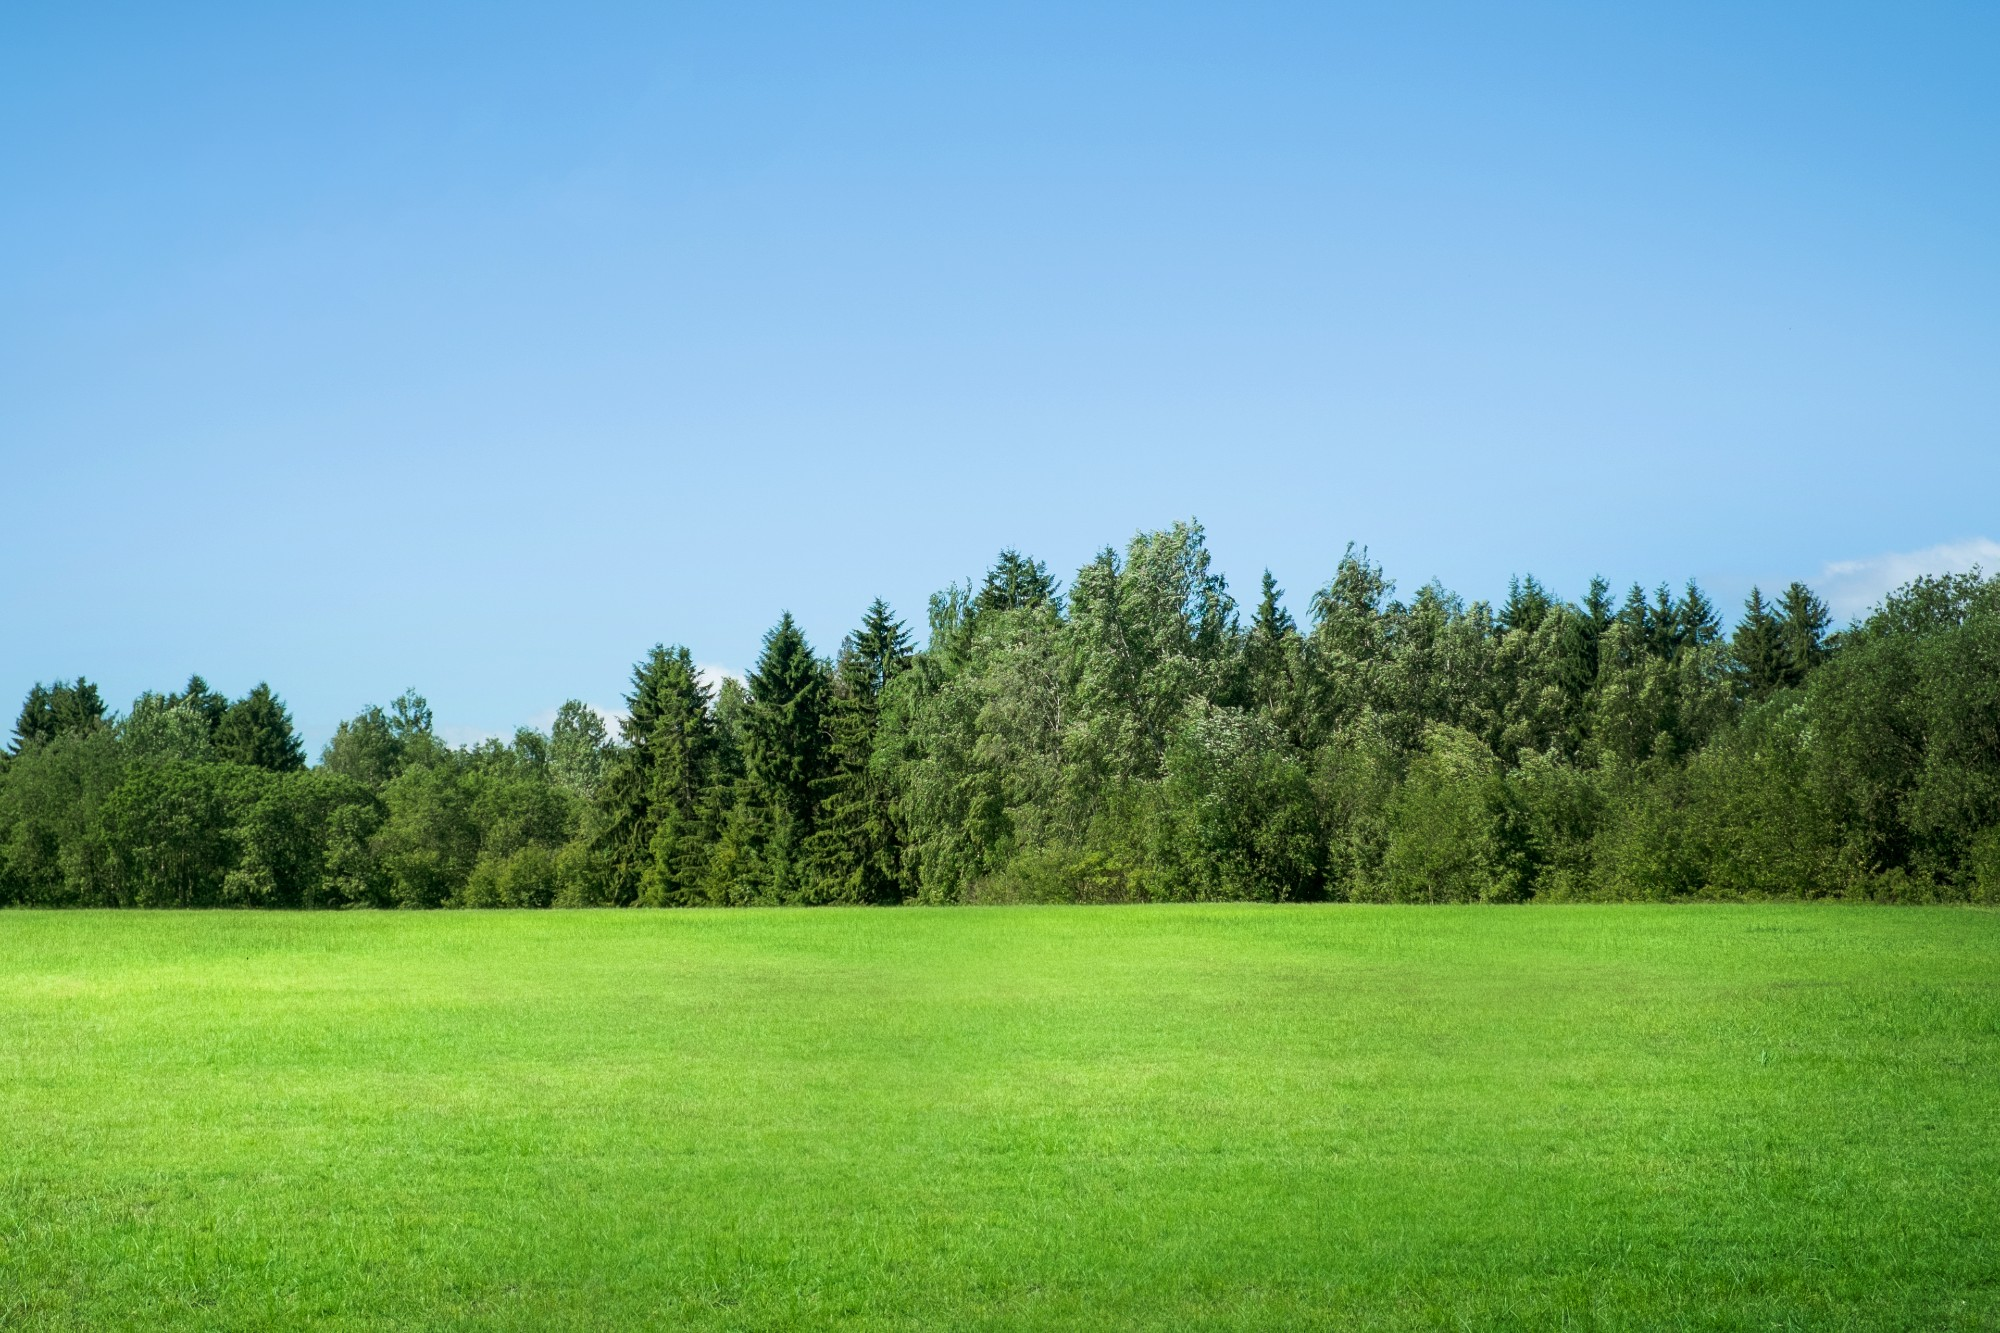 Green Field with Green Trees and Blue Sky